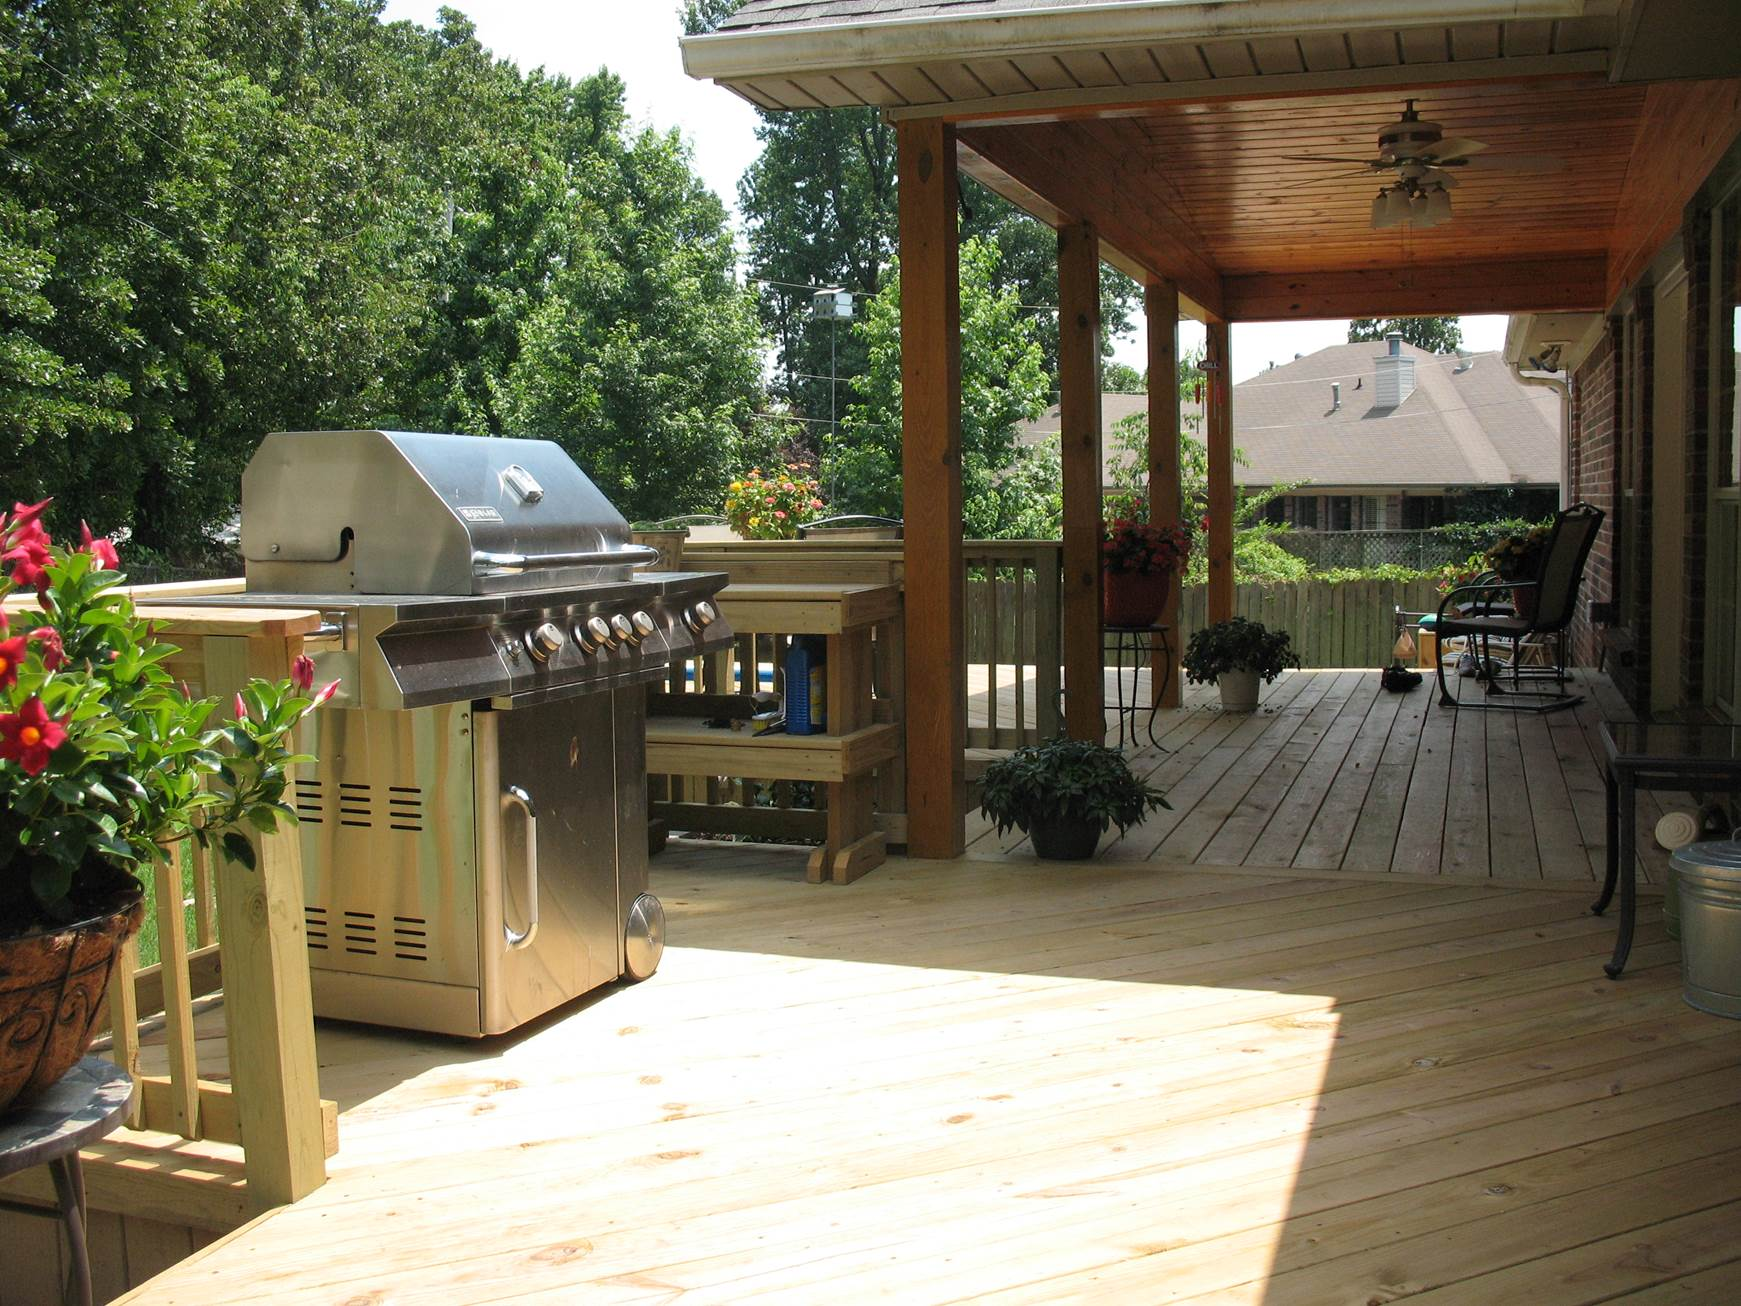 Backyard Structures: Let's build a space out there! | St ... on Covered Back Deck Ideas id=68269